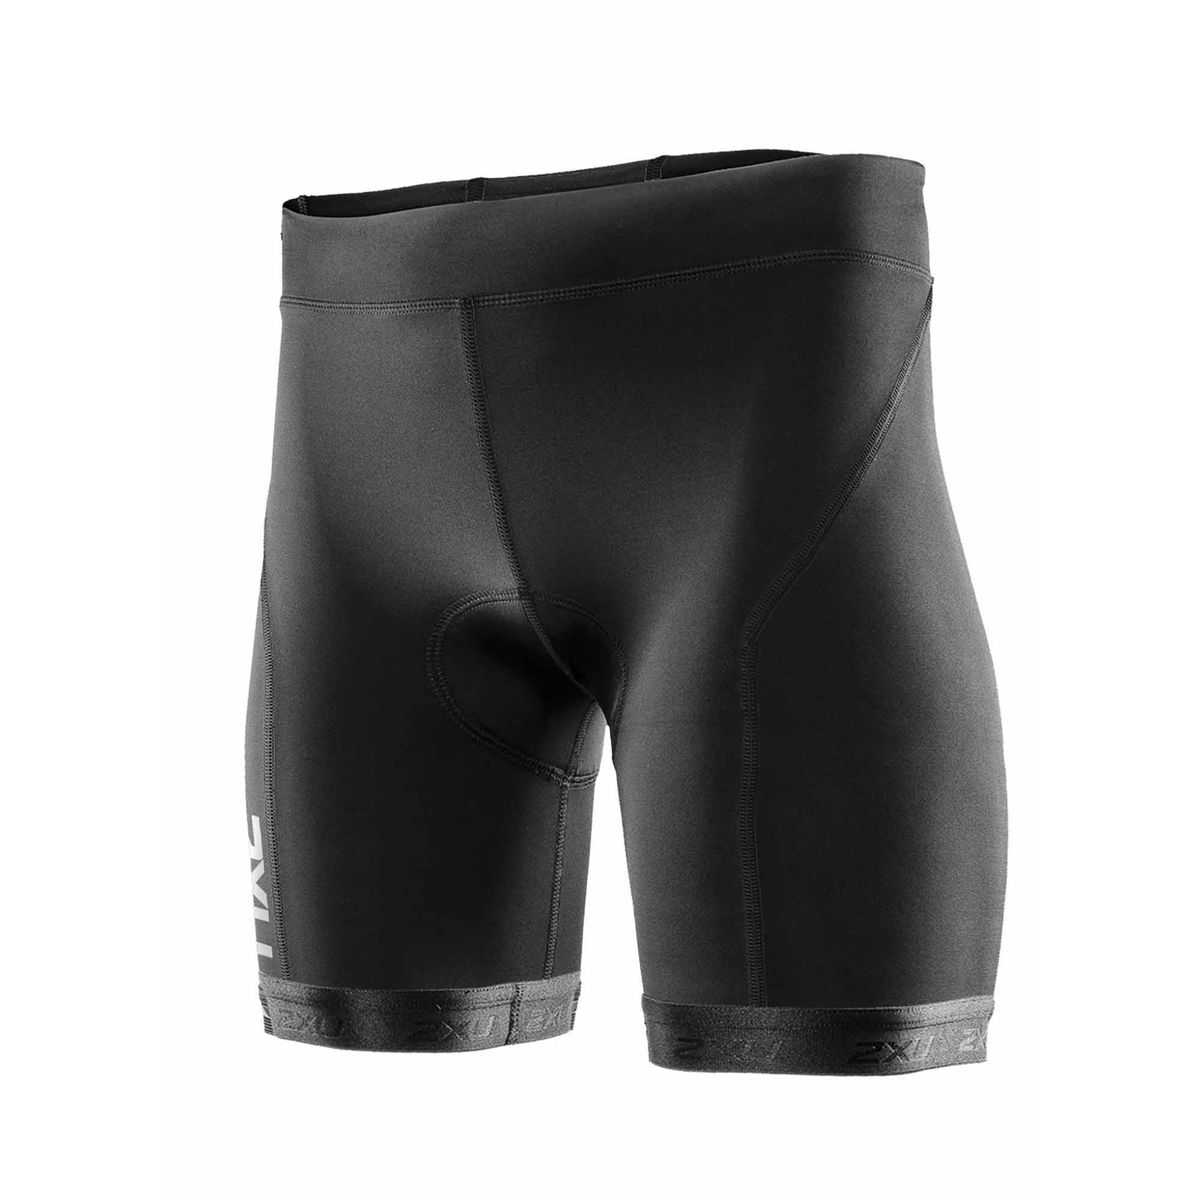 ACTIVE women's tri shorts